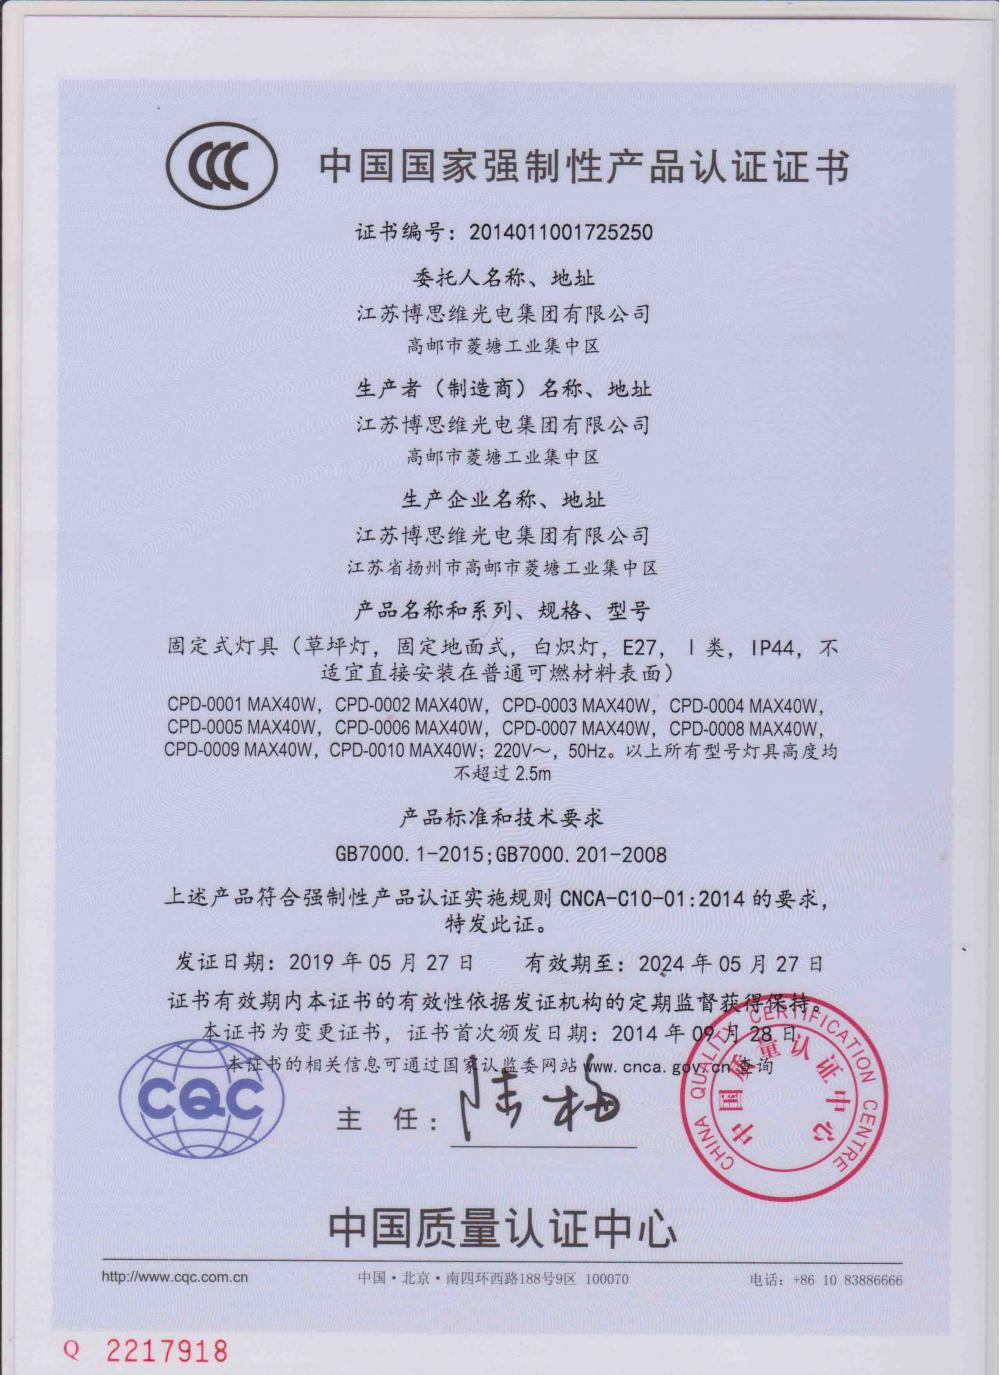 China National Compulsory Product Certification Certificate